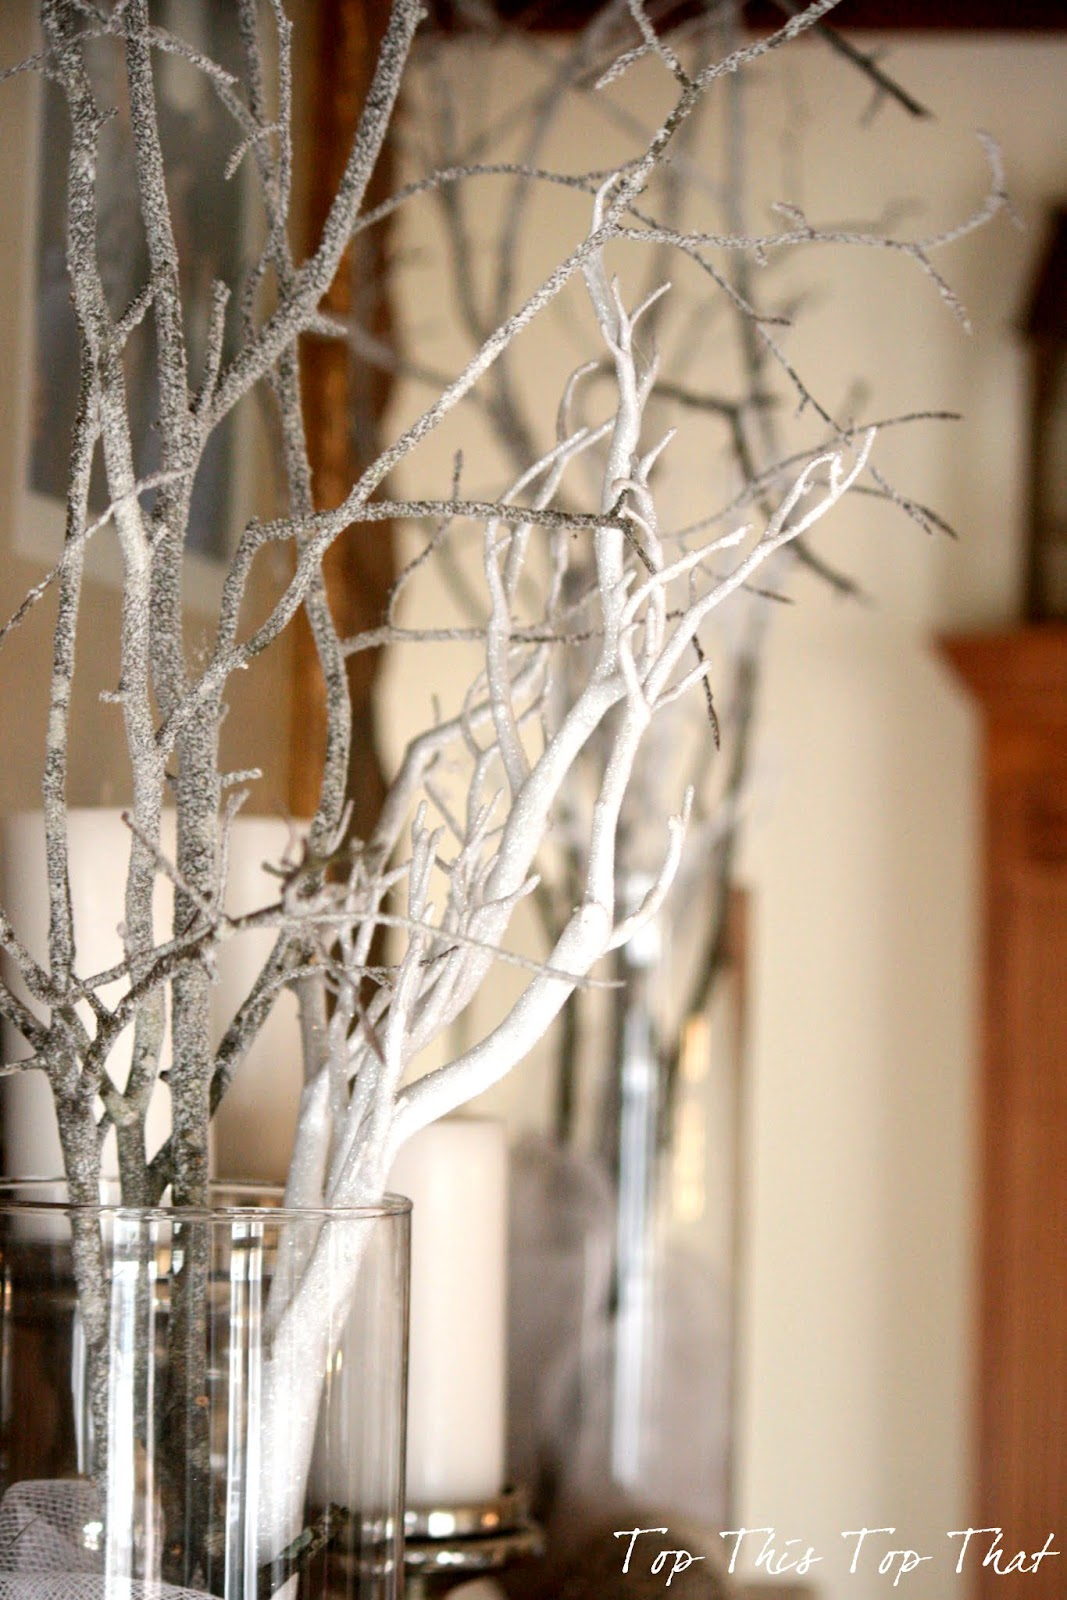 up some branches from the yard and sprayed them with snow in a can. Black Bedroom Furniture Sets. Home Design Ideas